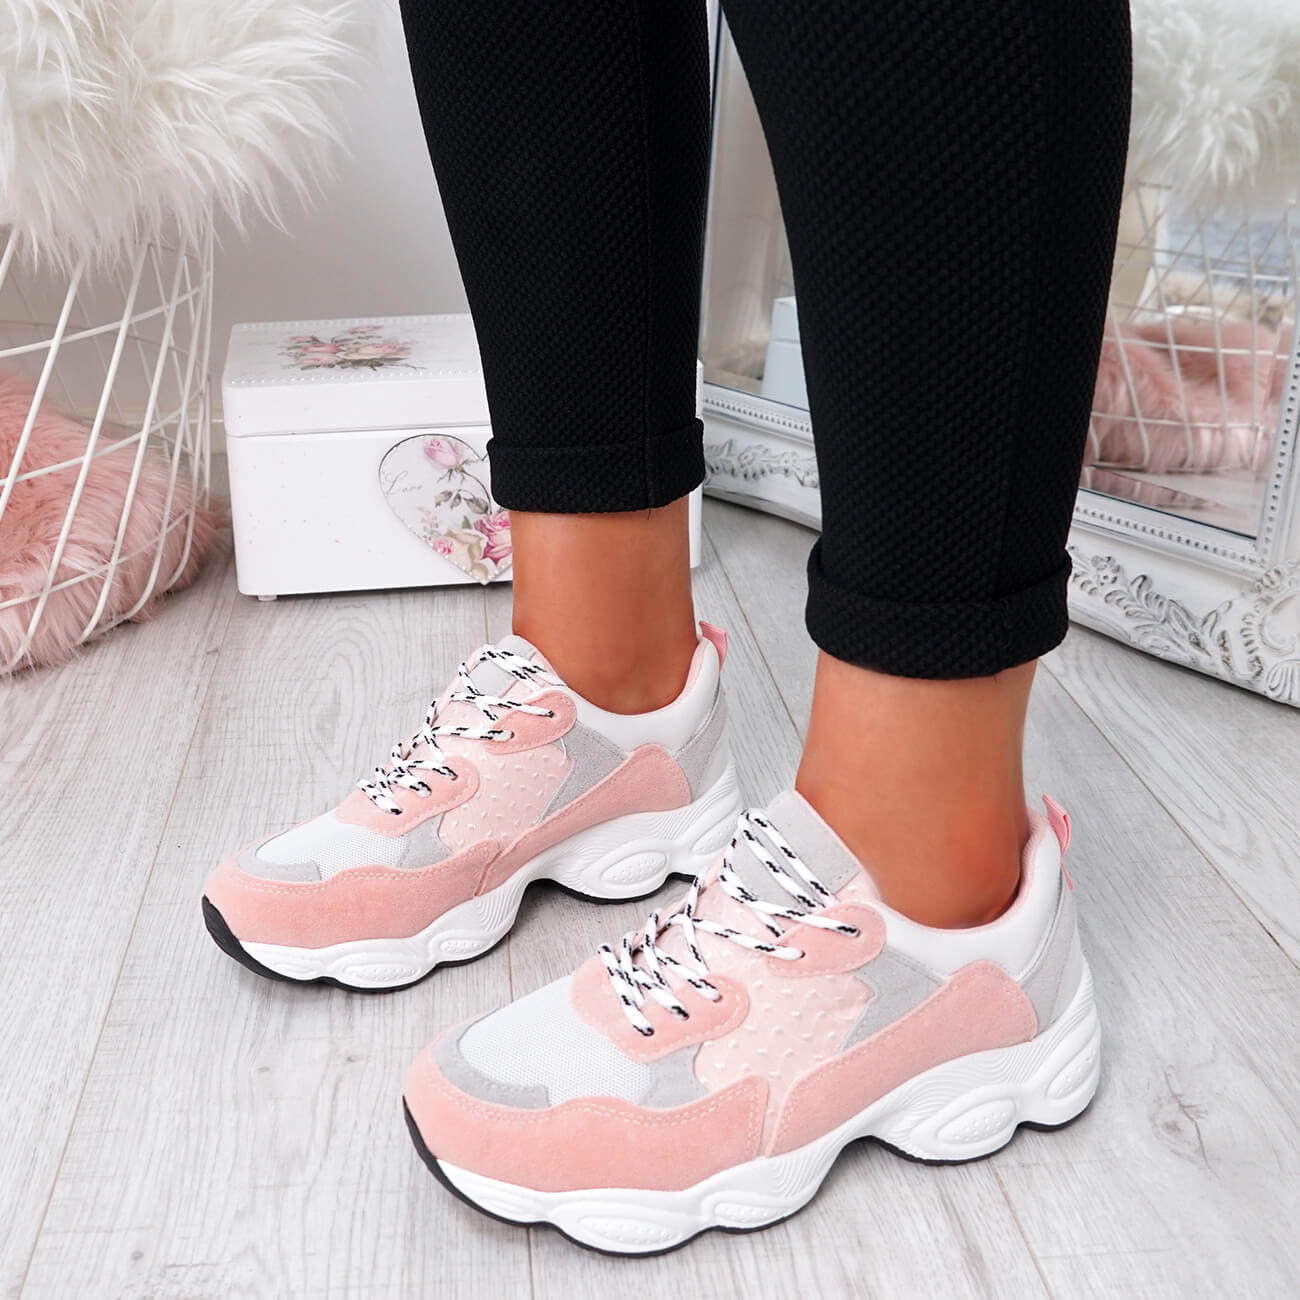 WOMENS-LADIES-RUNNING-GYM-CHUNKY-TRAINERS-SNEAKERS-SHOES-SIZE miniatura 19